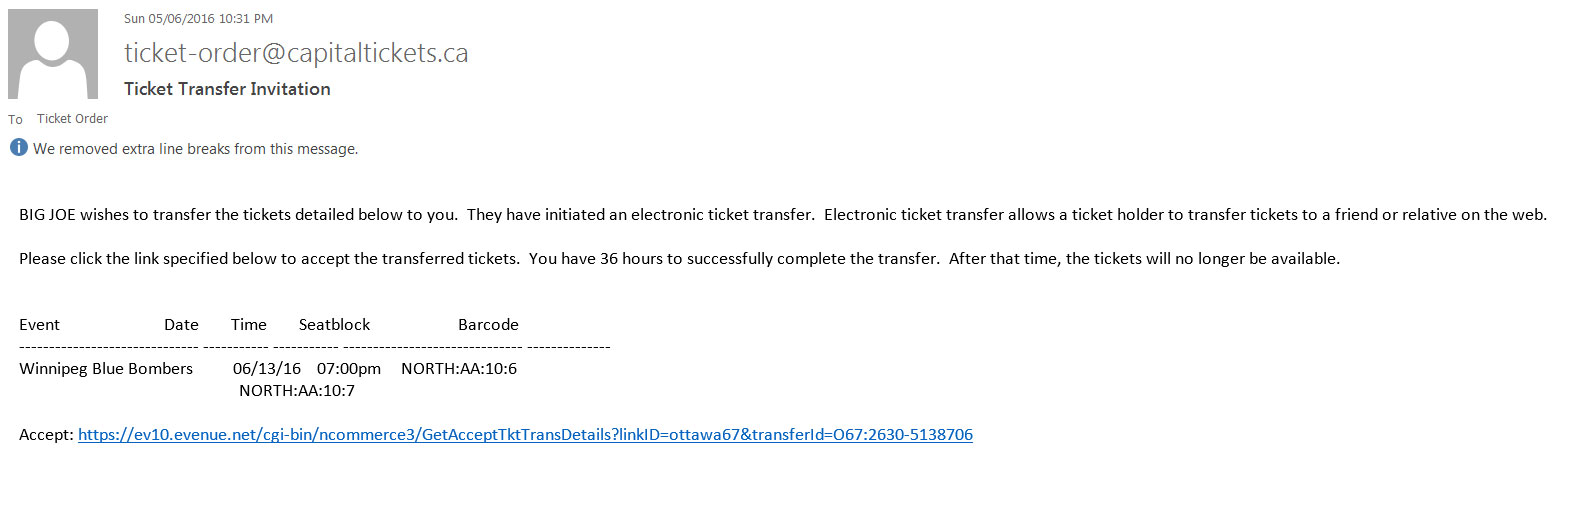 ticket card transferring your tickets ottawa redblacks step 5 email is sent to the recipient of the ticket transfer